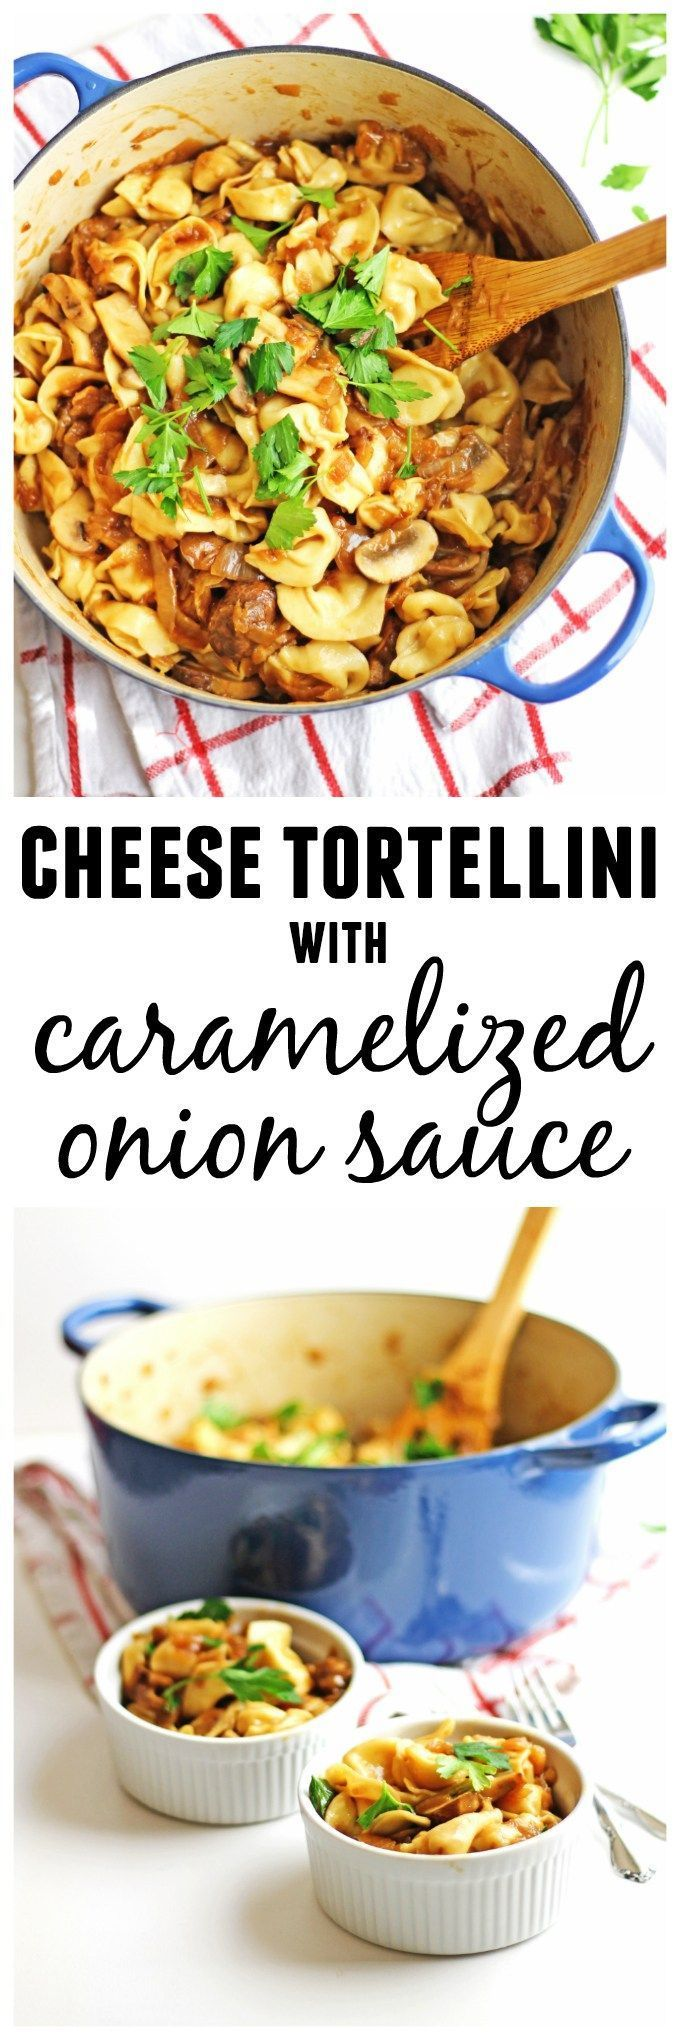 3 cheese tortellini with caramelized onion sauce and mushrooms! A simple, yet impressive slow cooked, vegetarian recipe that is rich with flavor. Your whole family will love this! // Rhubarbarians / family dinner / vegetarian dinner / sunday supper